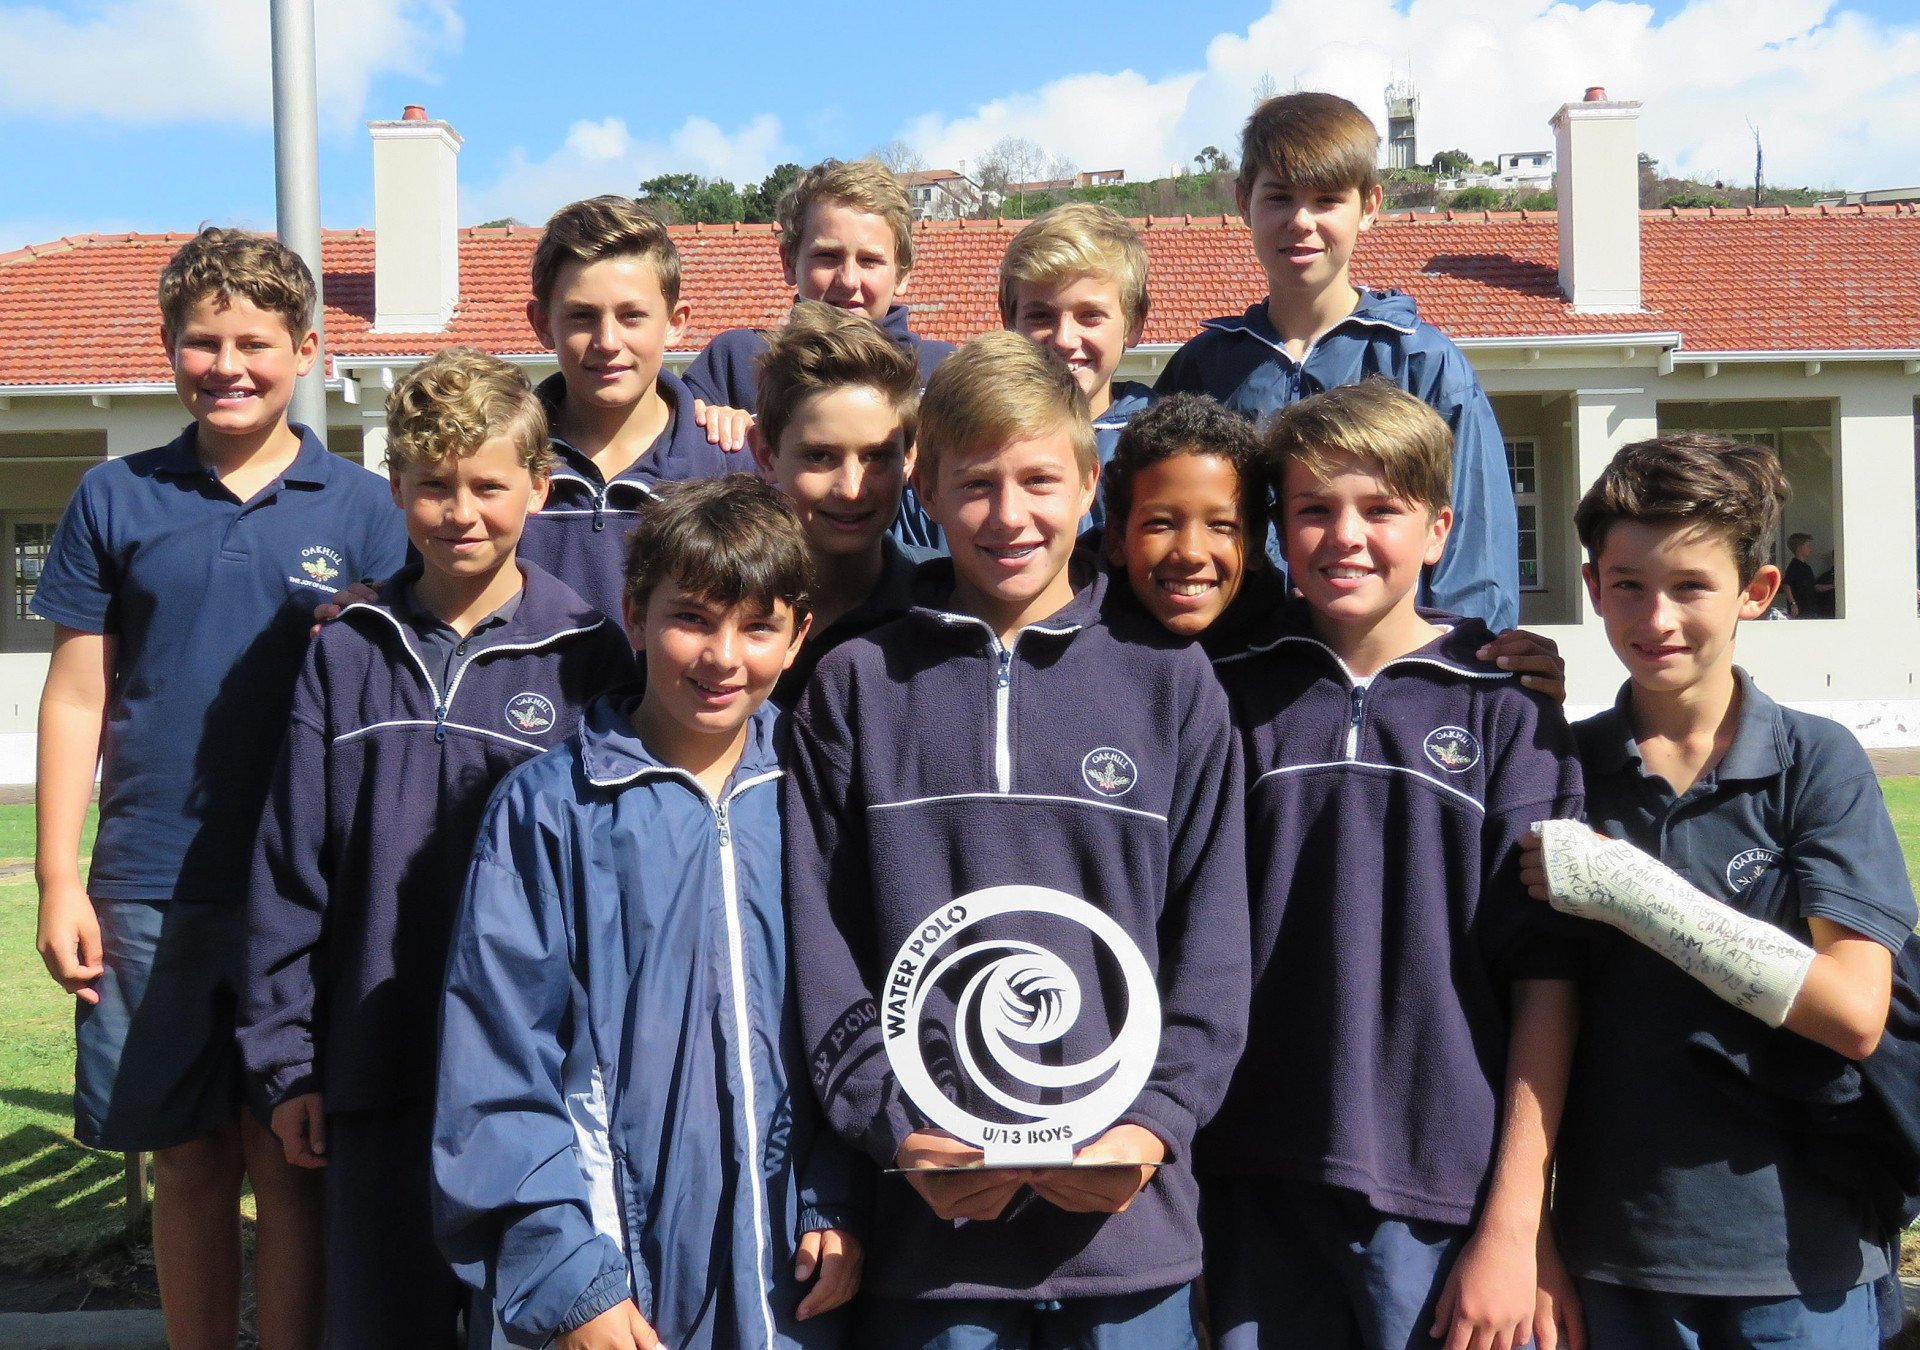 Oakhill U13A boys team win the SWD Water Polo League trophy